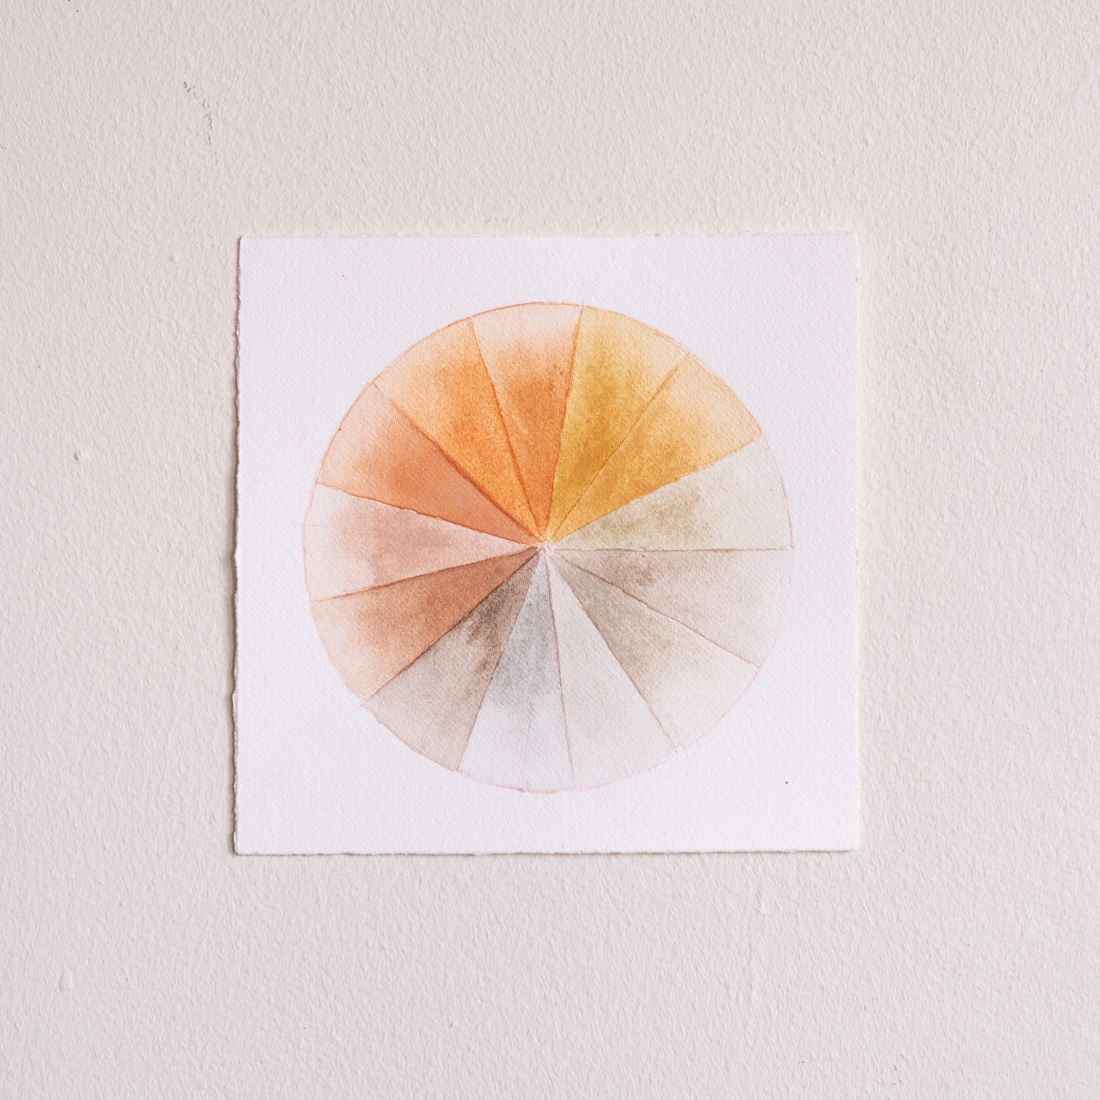 Anakiwi Color Wheel I